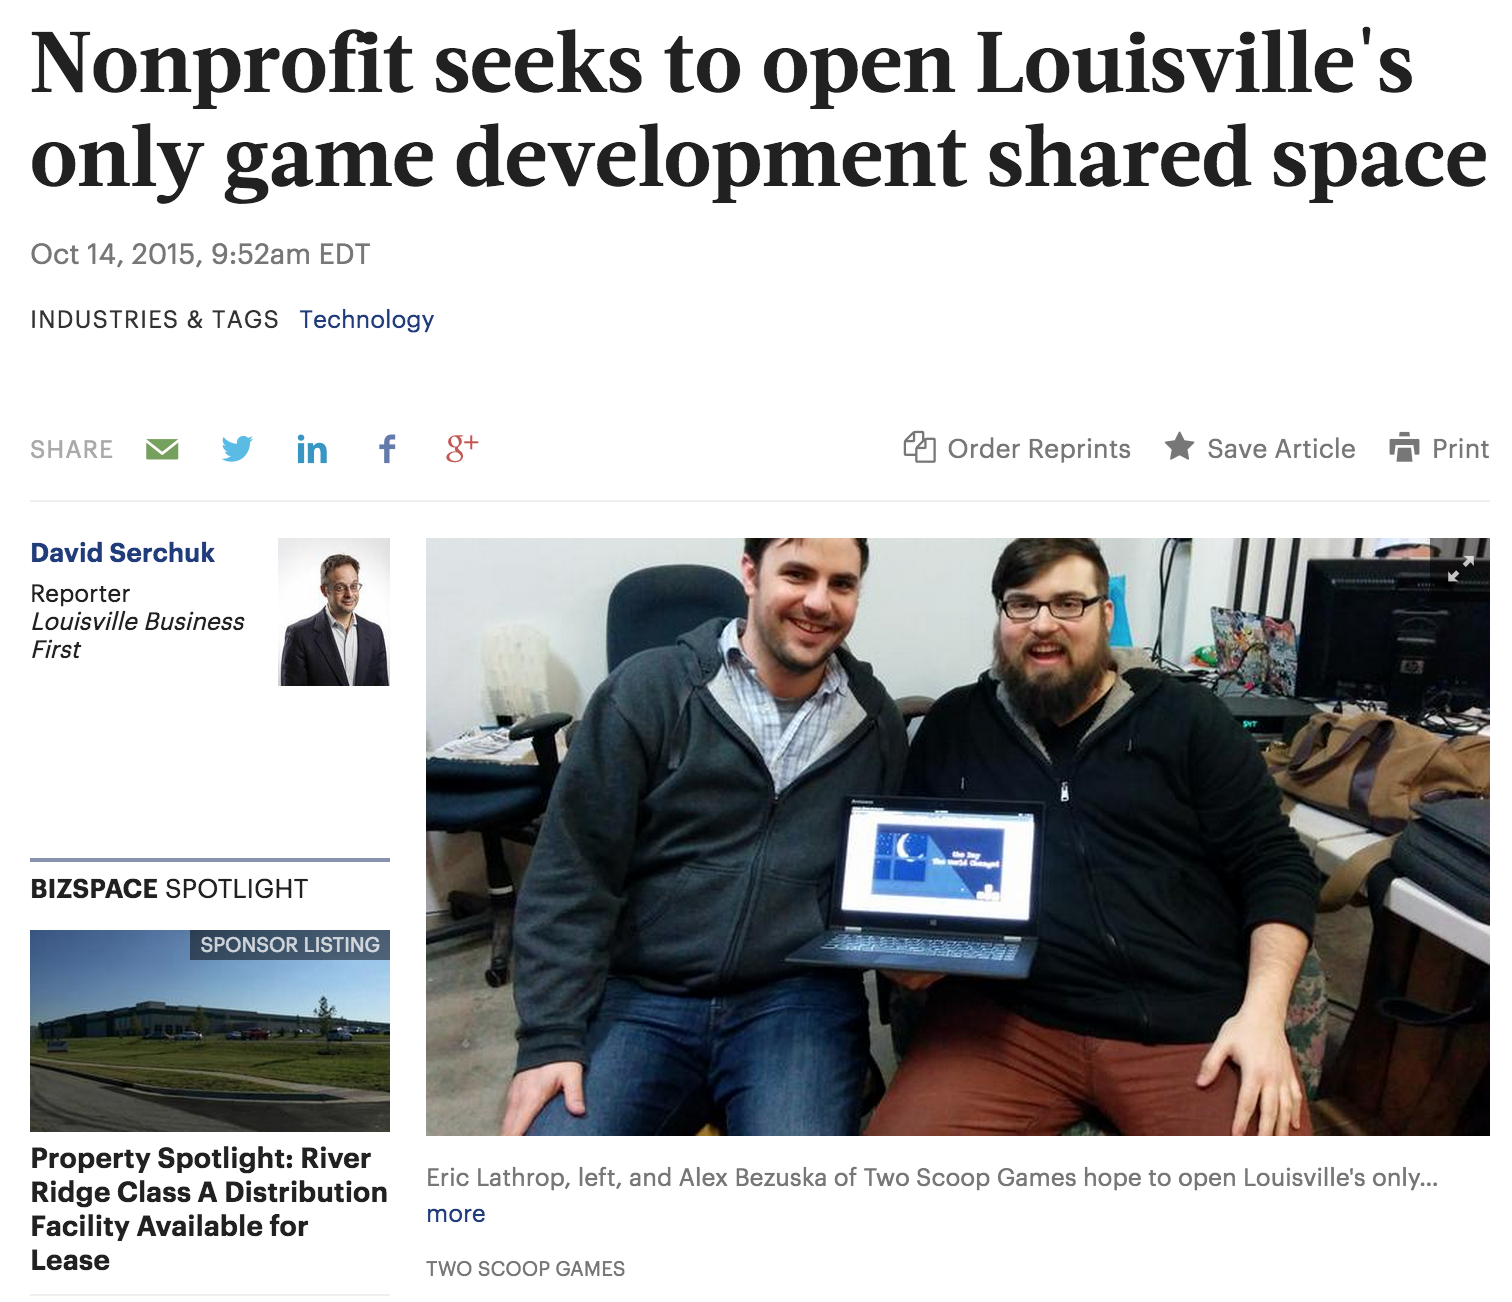 Nonprofit seeks to open Louisville's only game development shared space